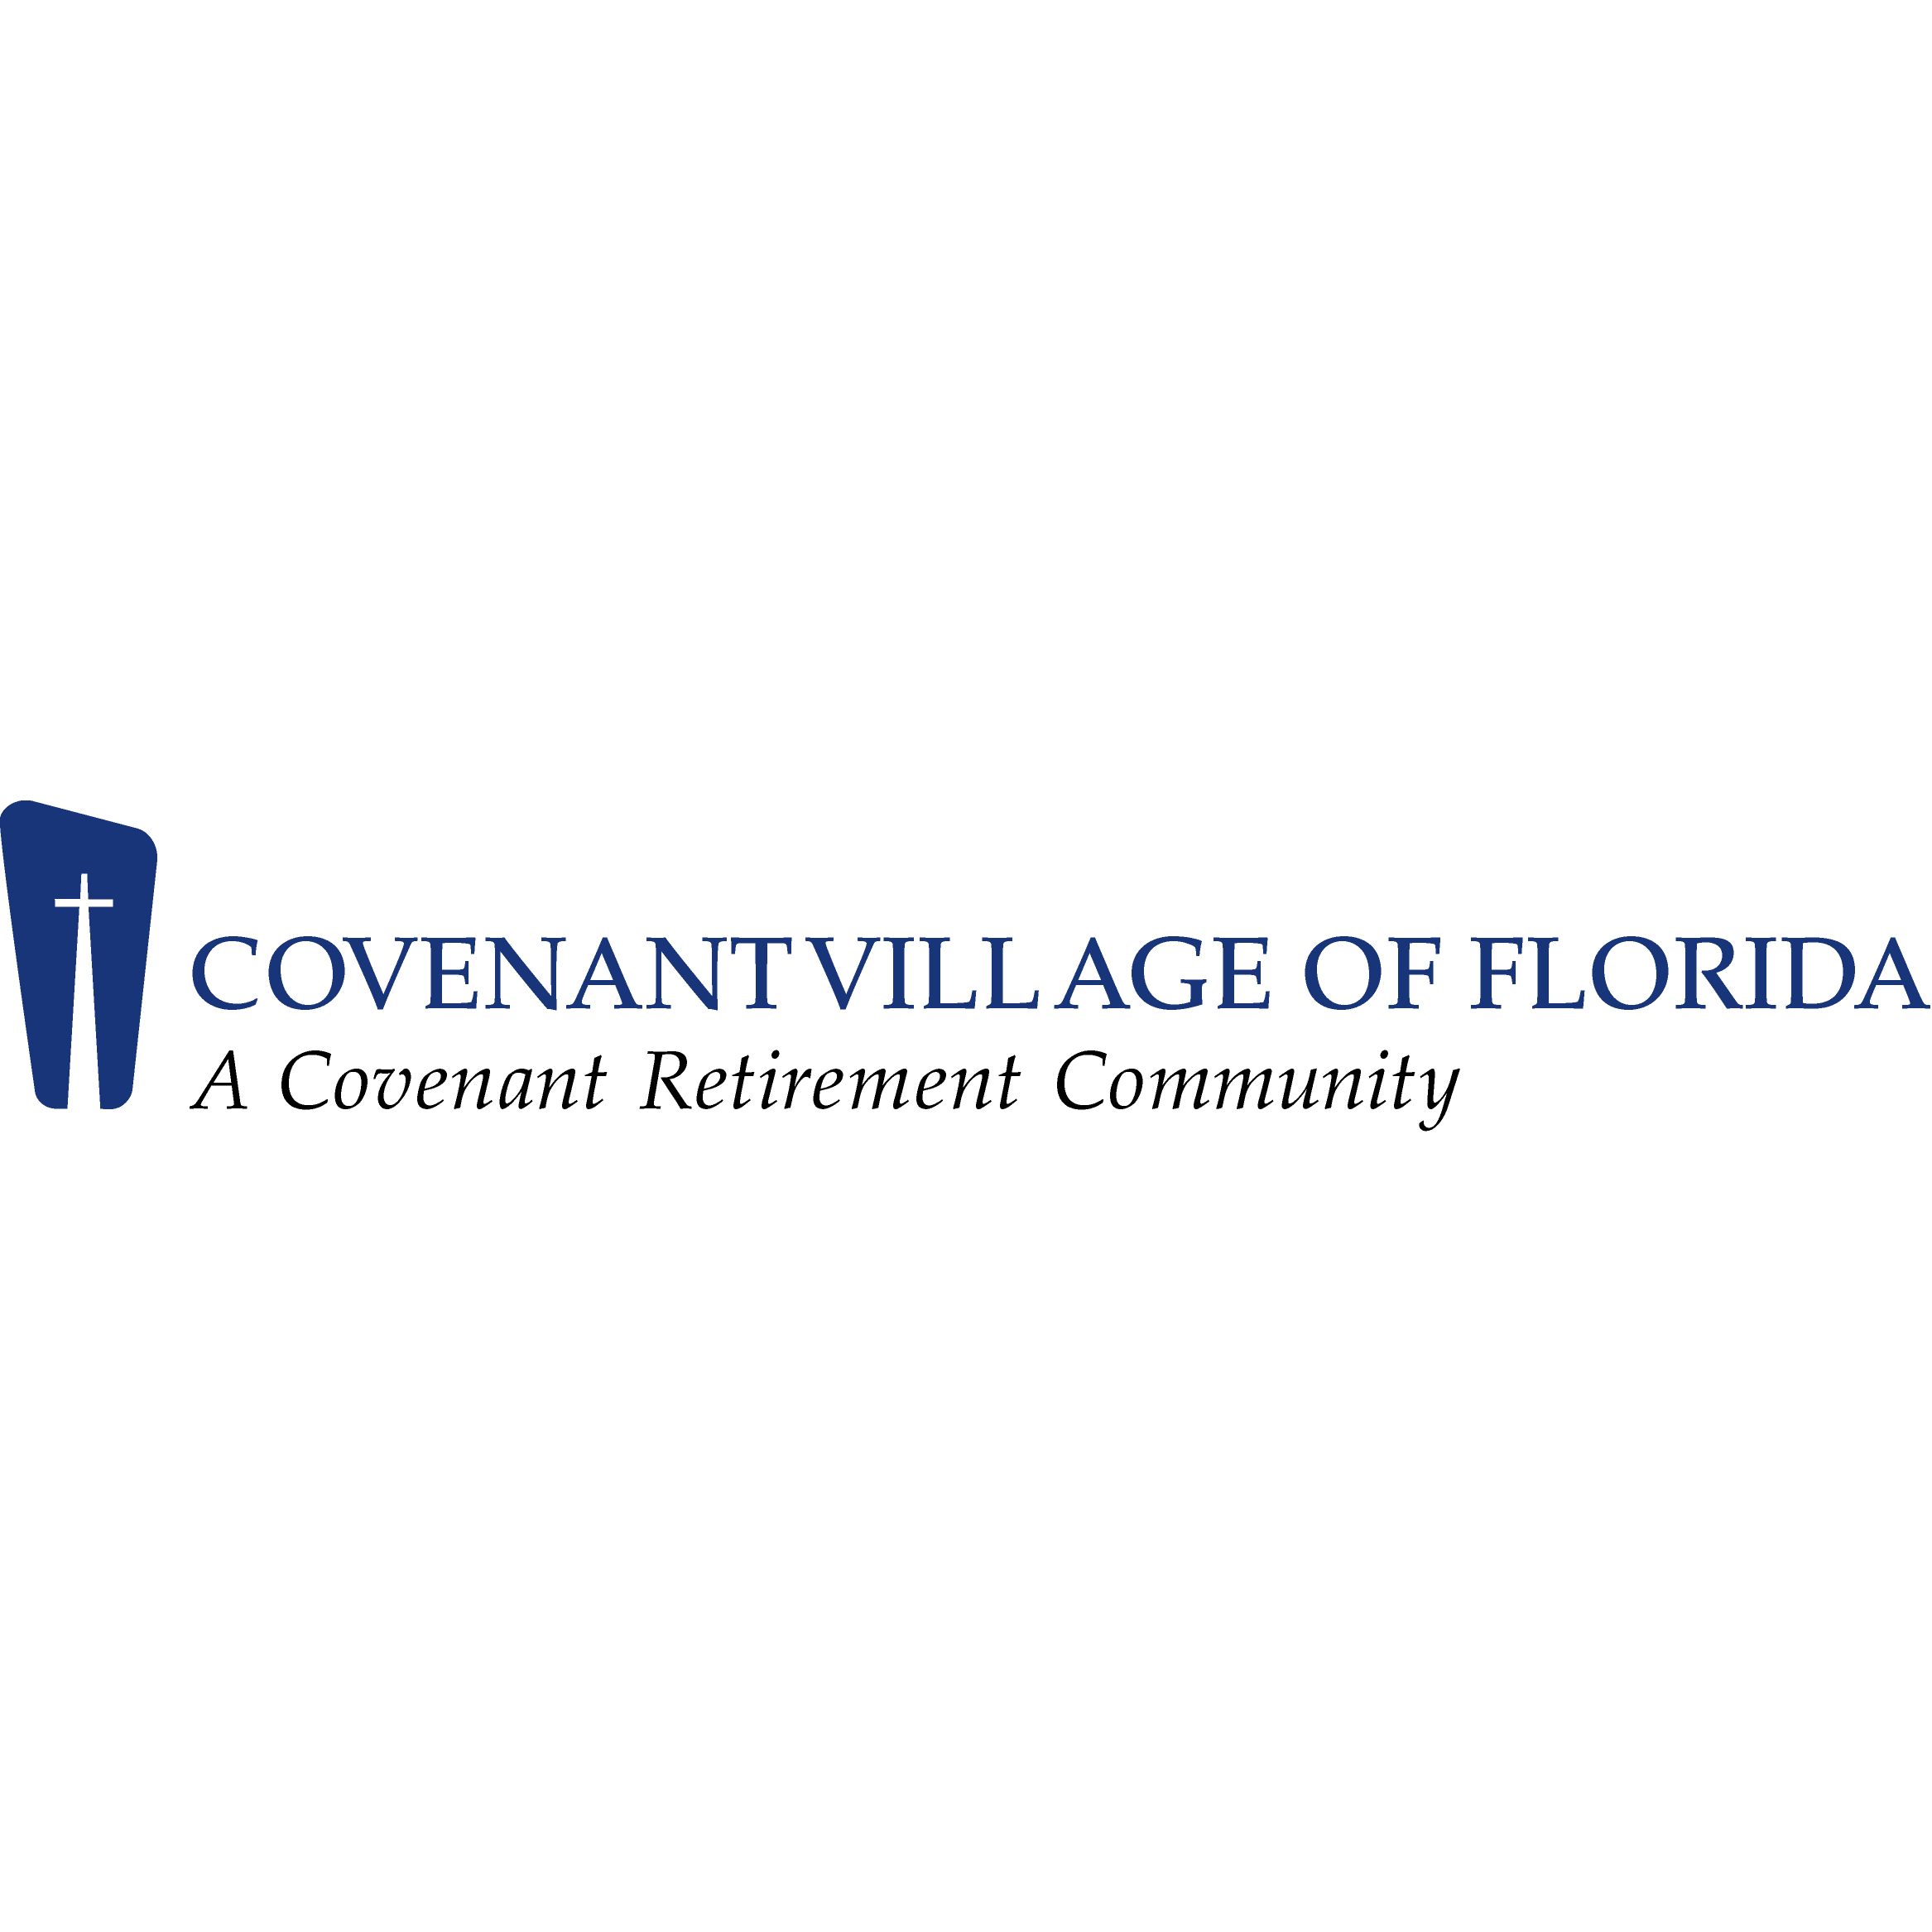 Covenant Village of Florida